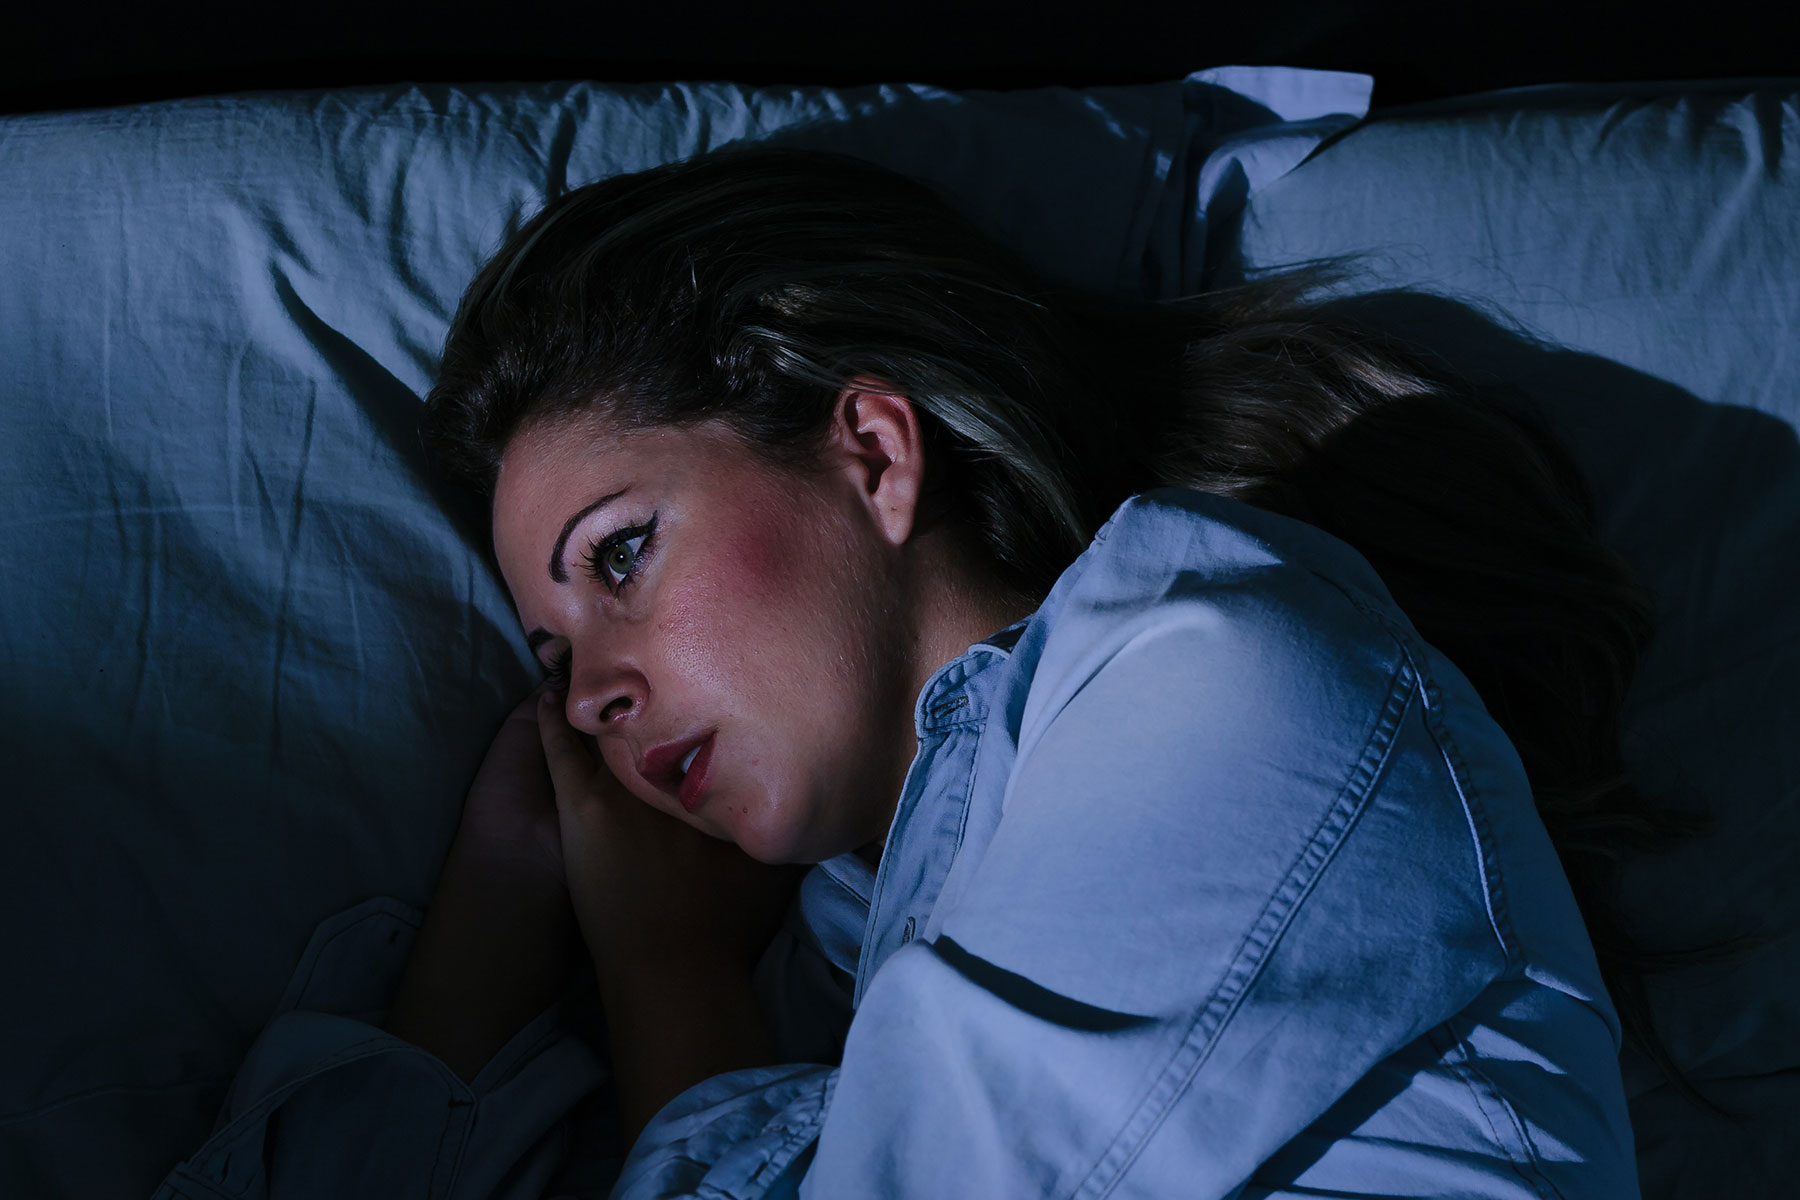 Women sleeping worrying about mental health issues